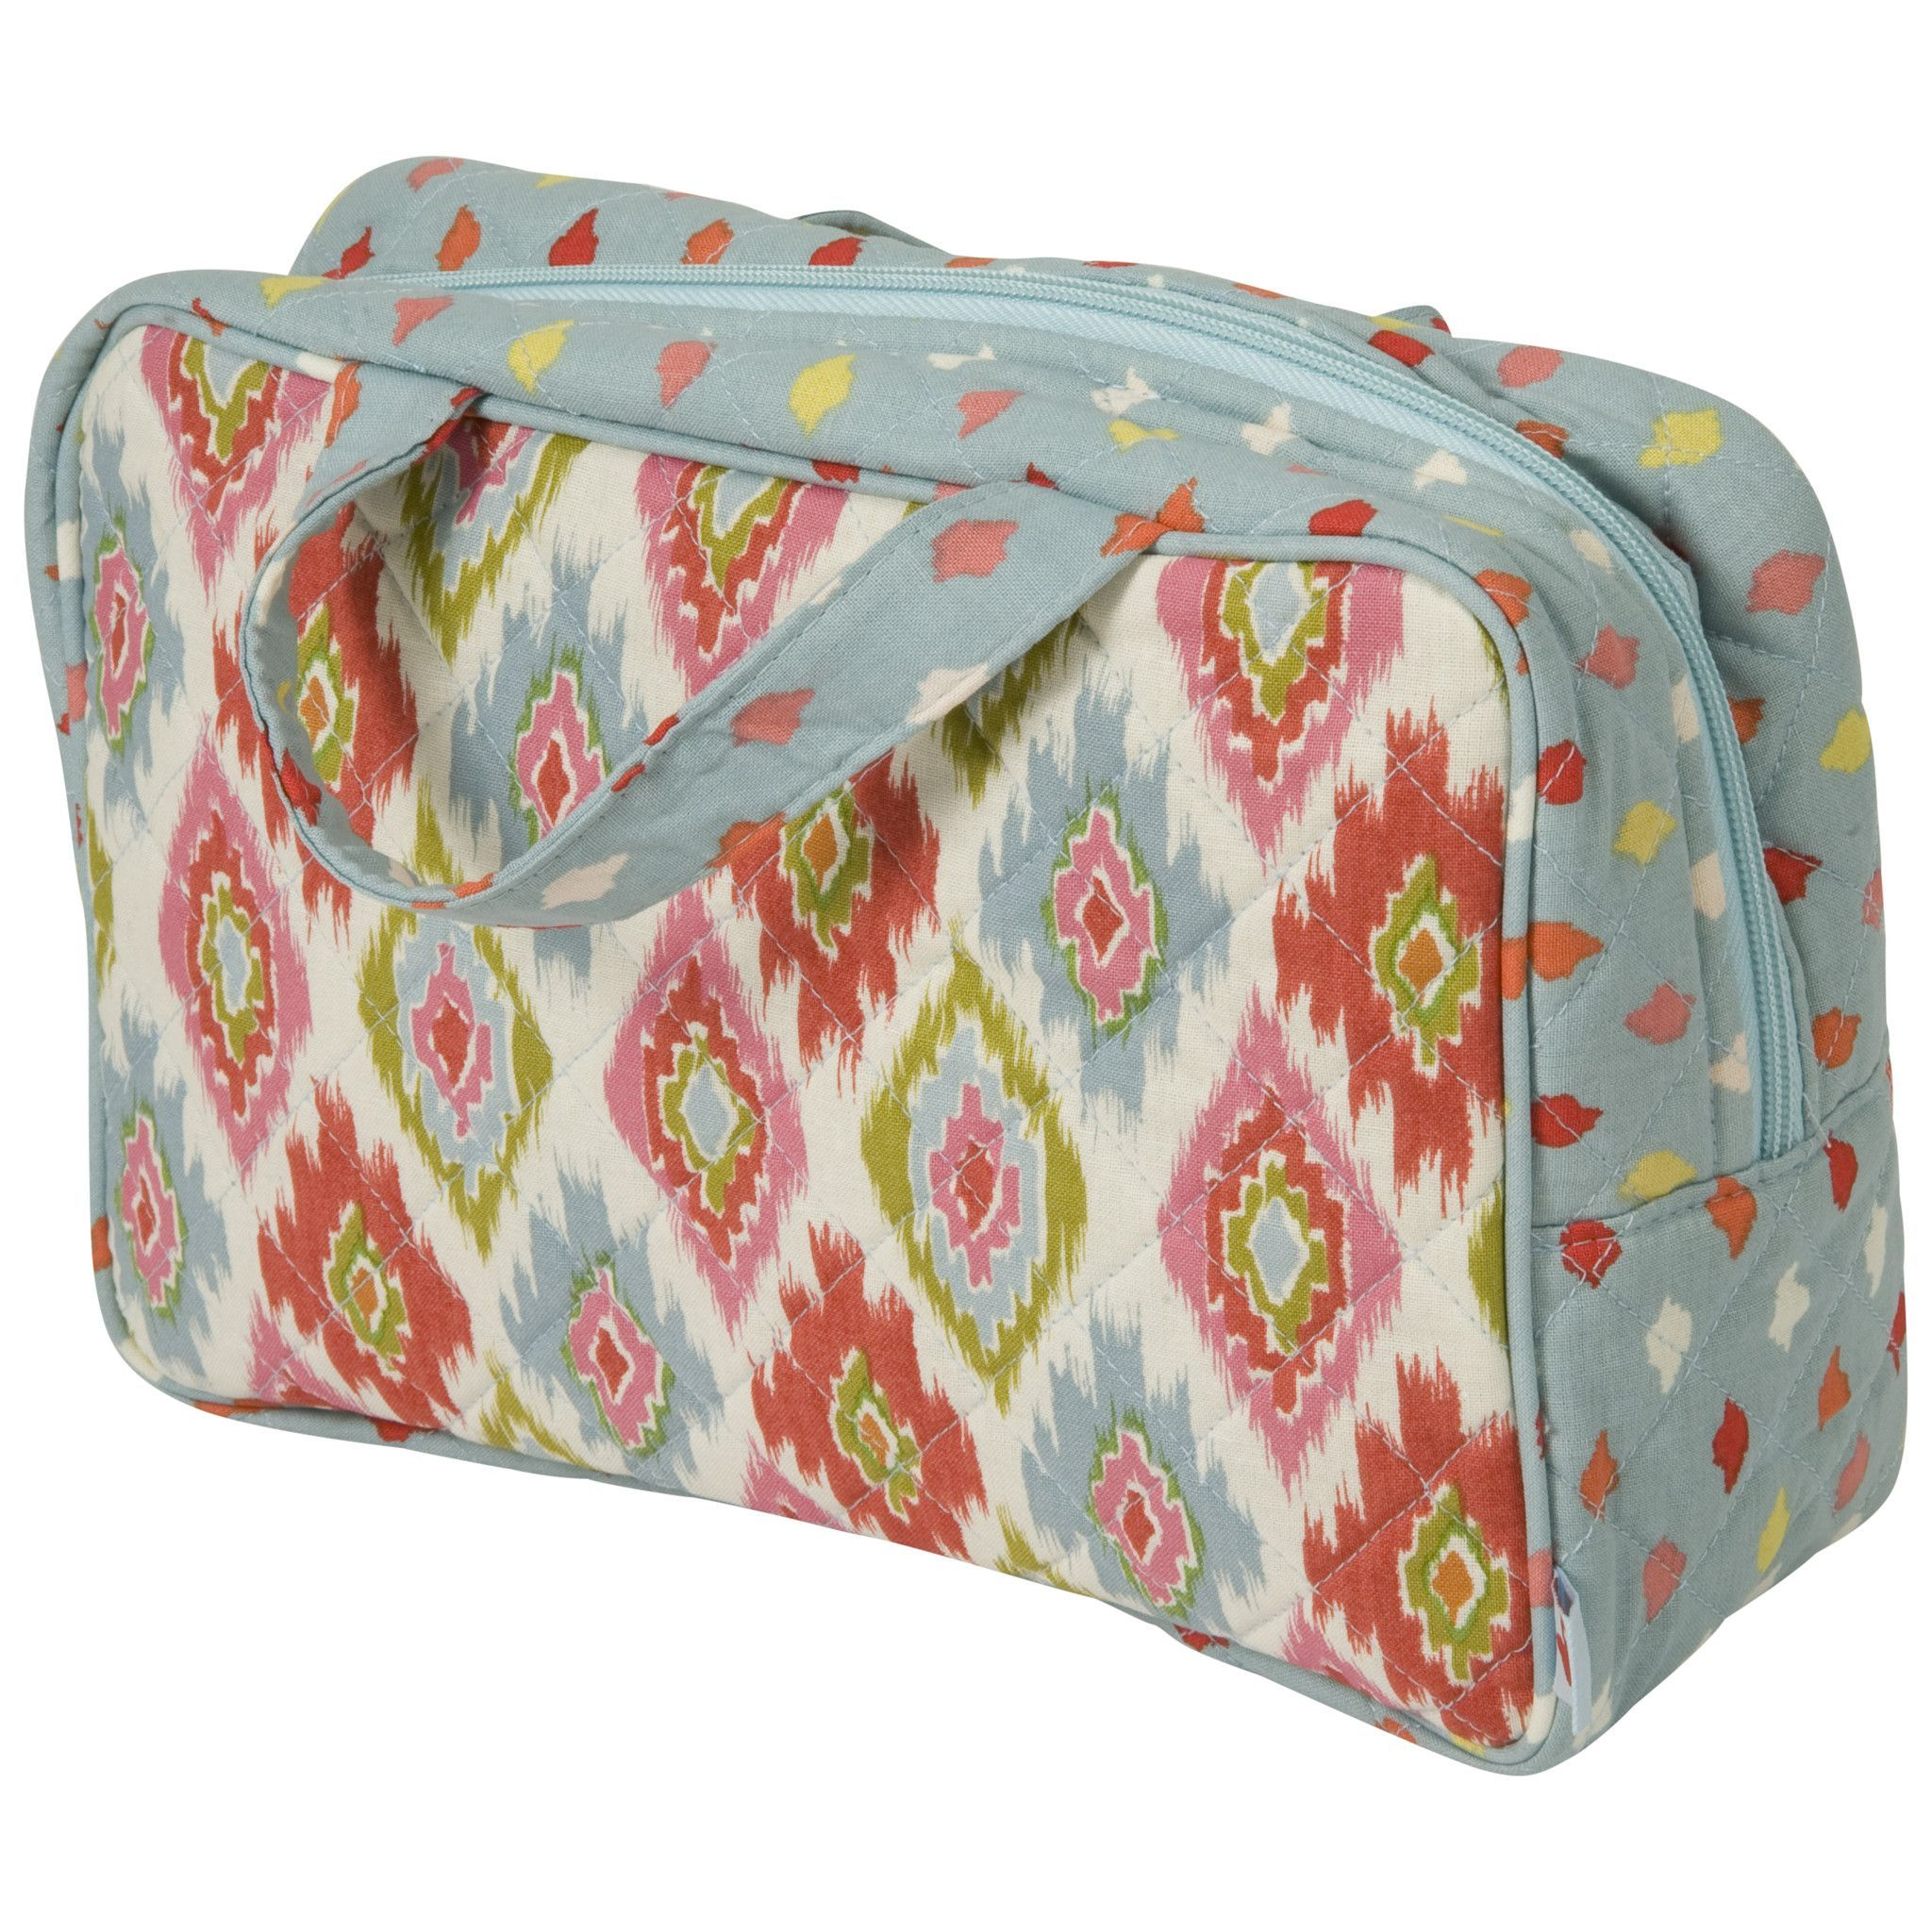 Padded And Sched Fabric Zippered Cosmetic Bag Makeup With Handle Blue